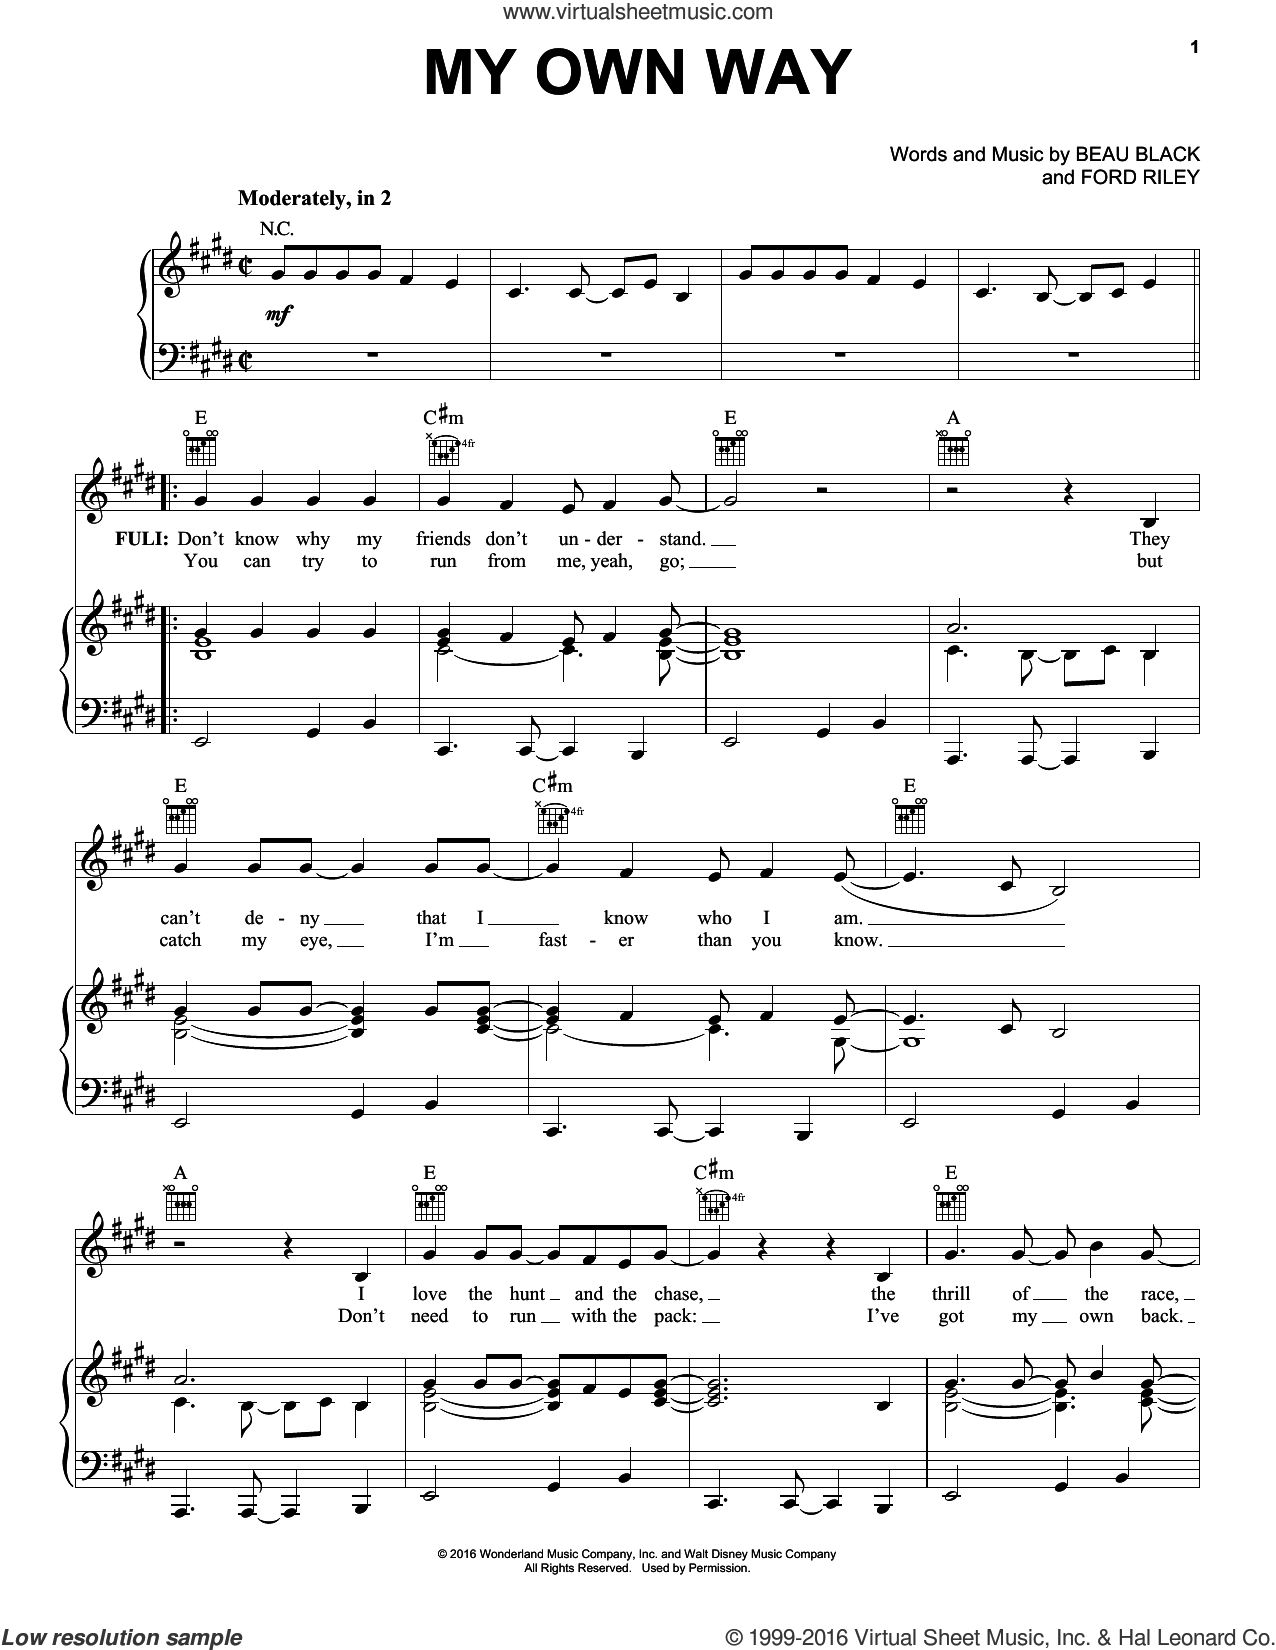 My Own Way sheet music for voice, piano or guitar by Beau Black and Ford Riley, intermediate skill level